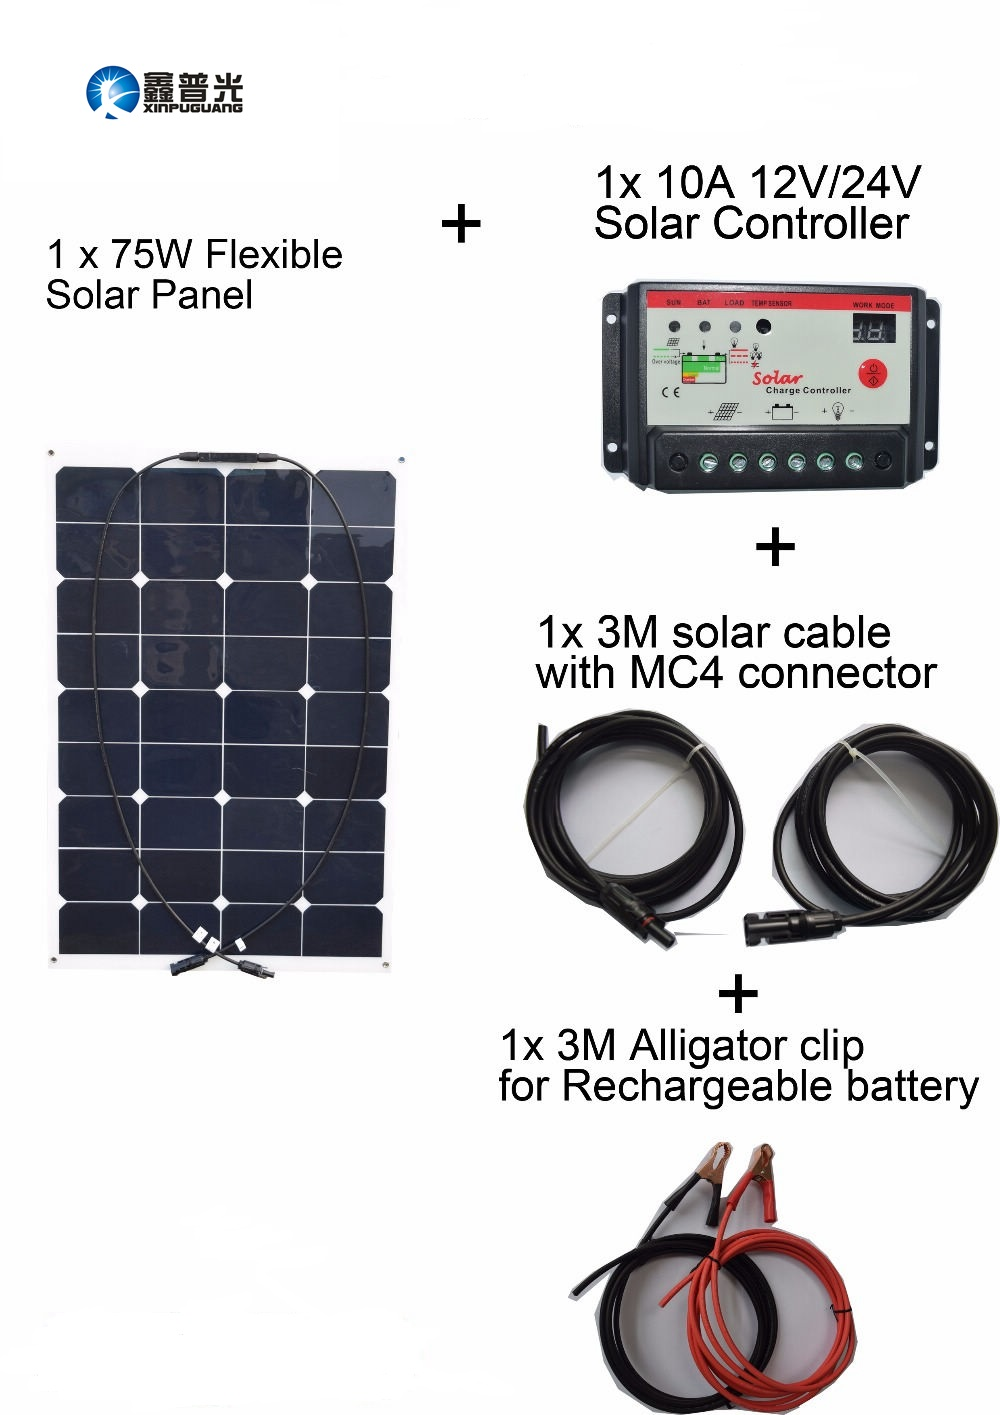 Xinpuguang 75W 20V Solar Panel System Flexible Smooth Surface DIY RV Marine Solar System Kits Controller Cable Outdoor Led Light boguang 6x100w solar system kits 600w flexible solar panel controller inverter cable adaptor for12v 24v rv marine camping home